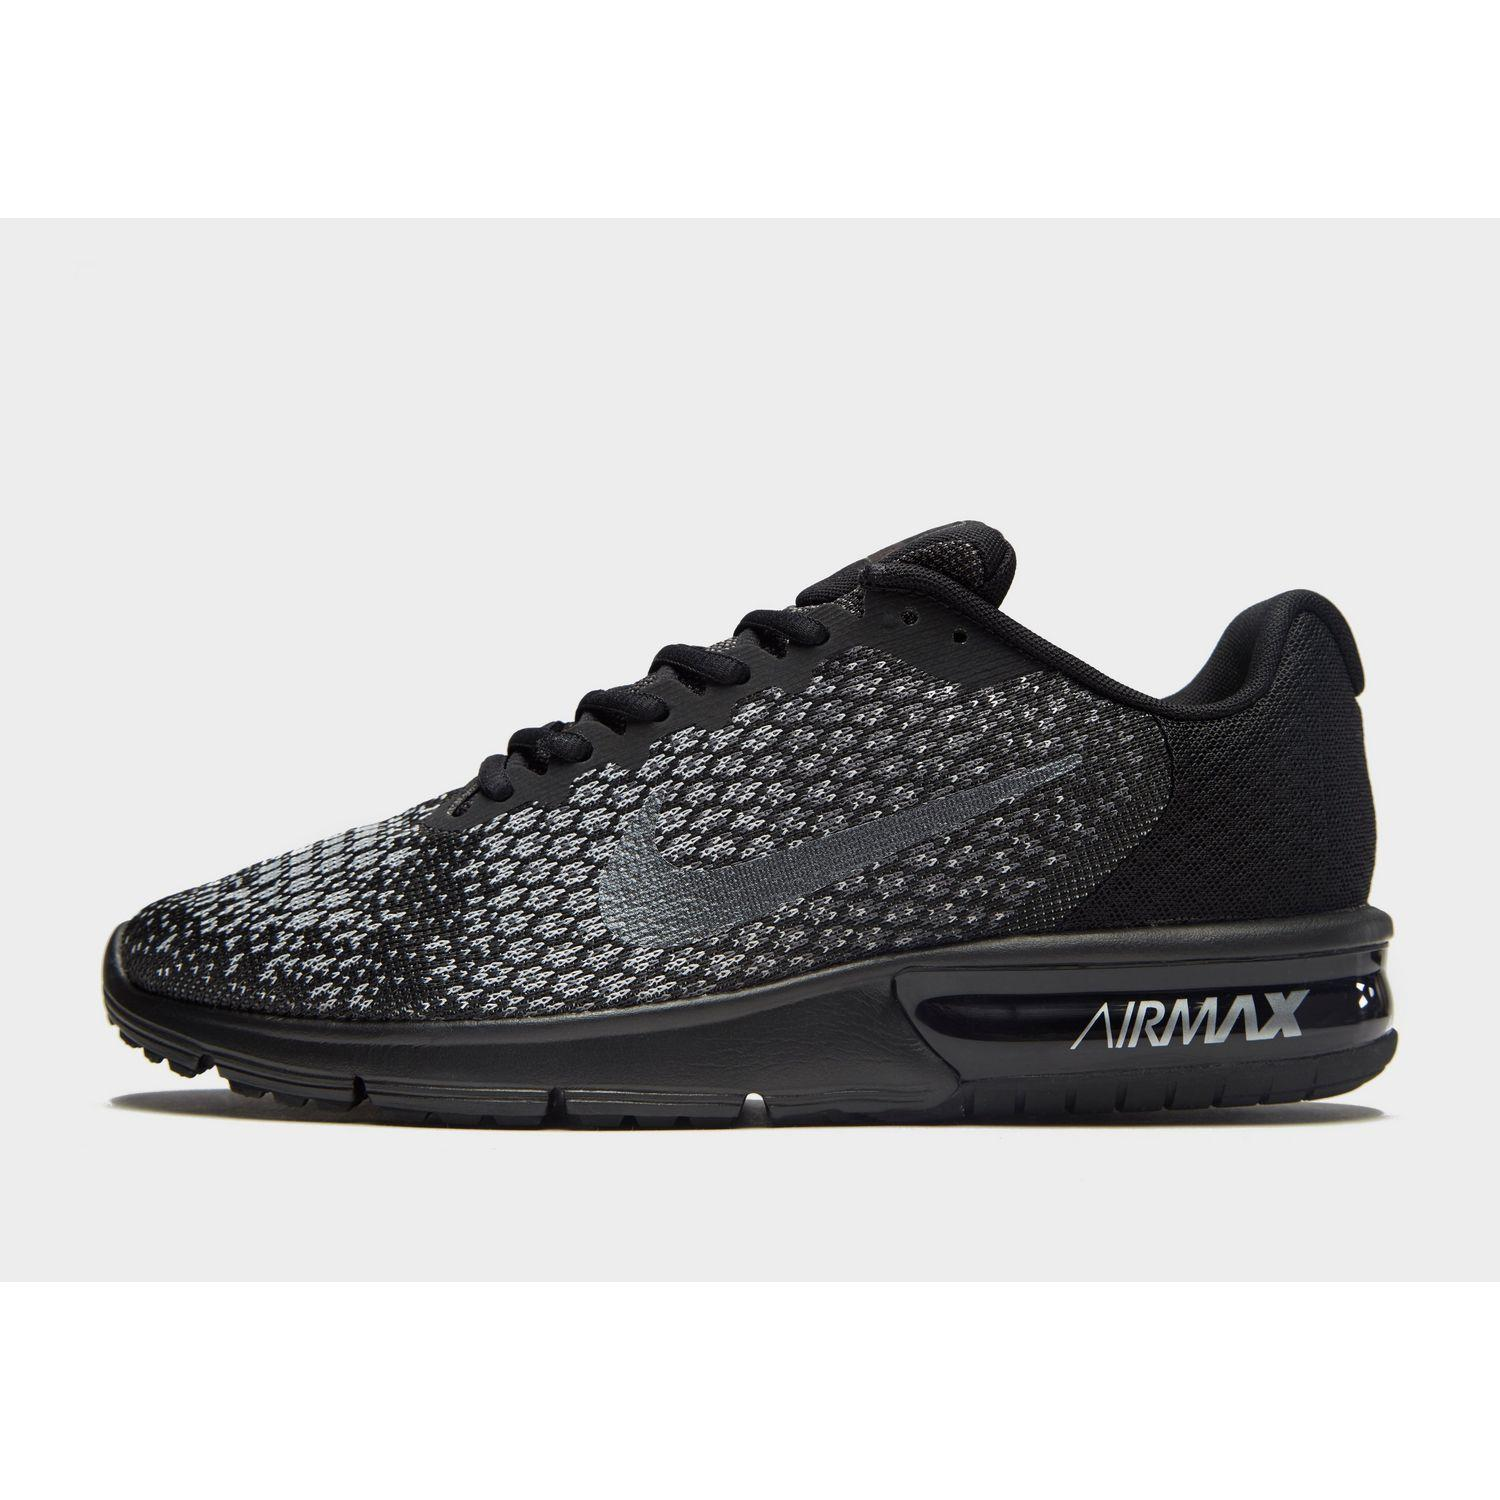 8f4636030b Nike. Men's Black Air Max Sequent 2. $118 $79 From JD Sports